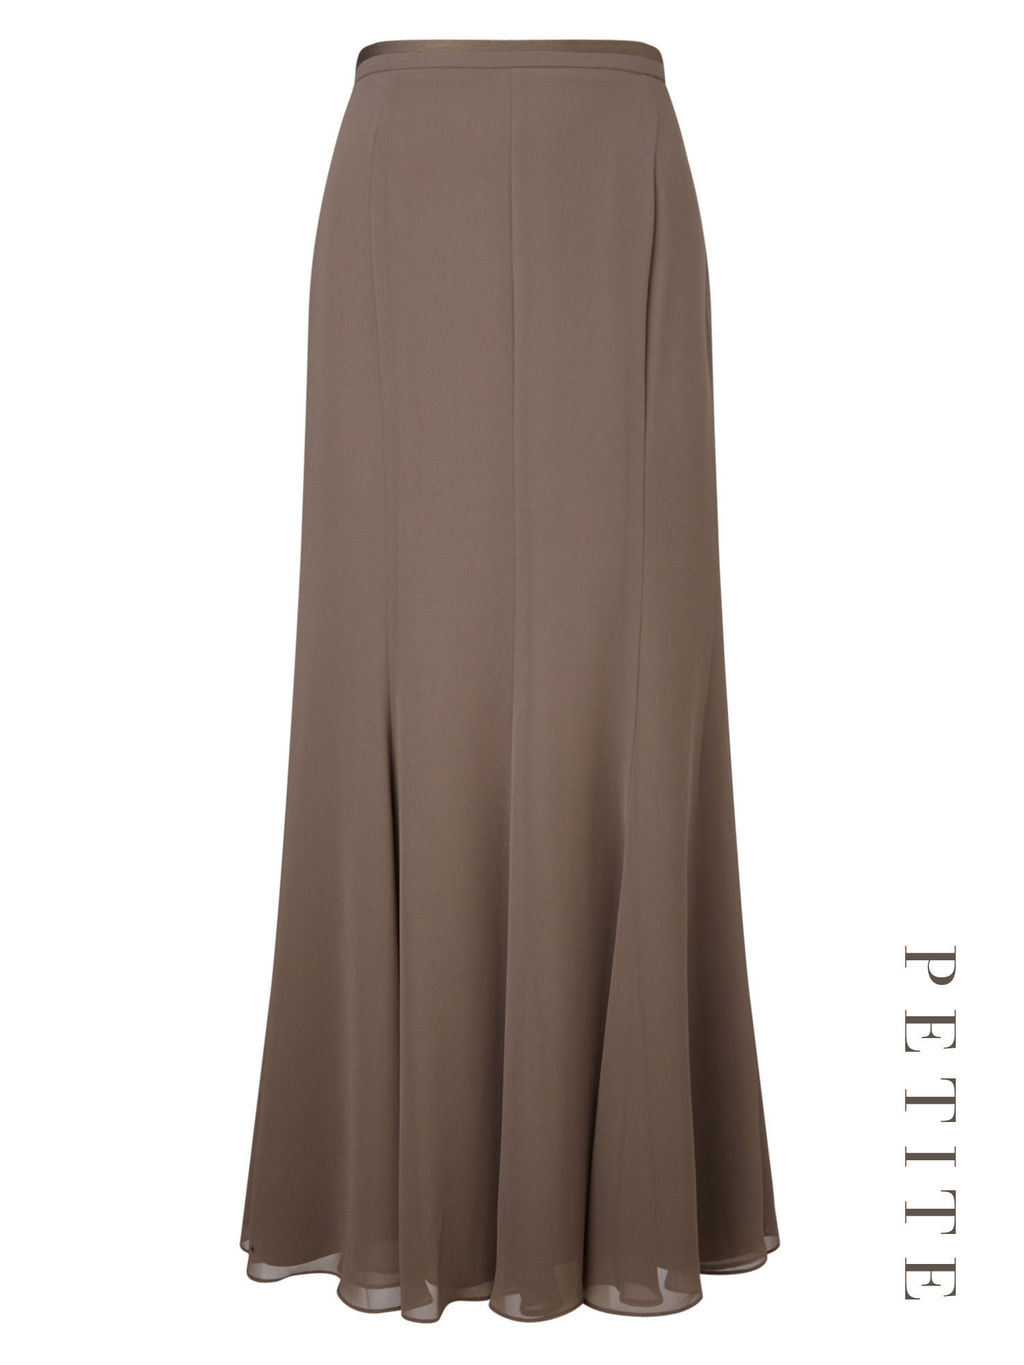 Petite Maxi Grosgrain Skirt - length: calf length; pattern: plain; fit: body skimming; waist: high rise; predominant colour: chocolate brown; occasions: evening; style: fit & flare; fibres: polyester/polyamide - 100%; texture group: crepes; pattern type: fabric; season: s/s 2016; wardrobe: event